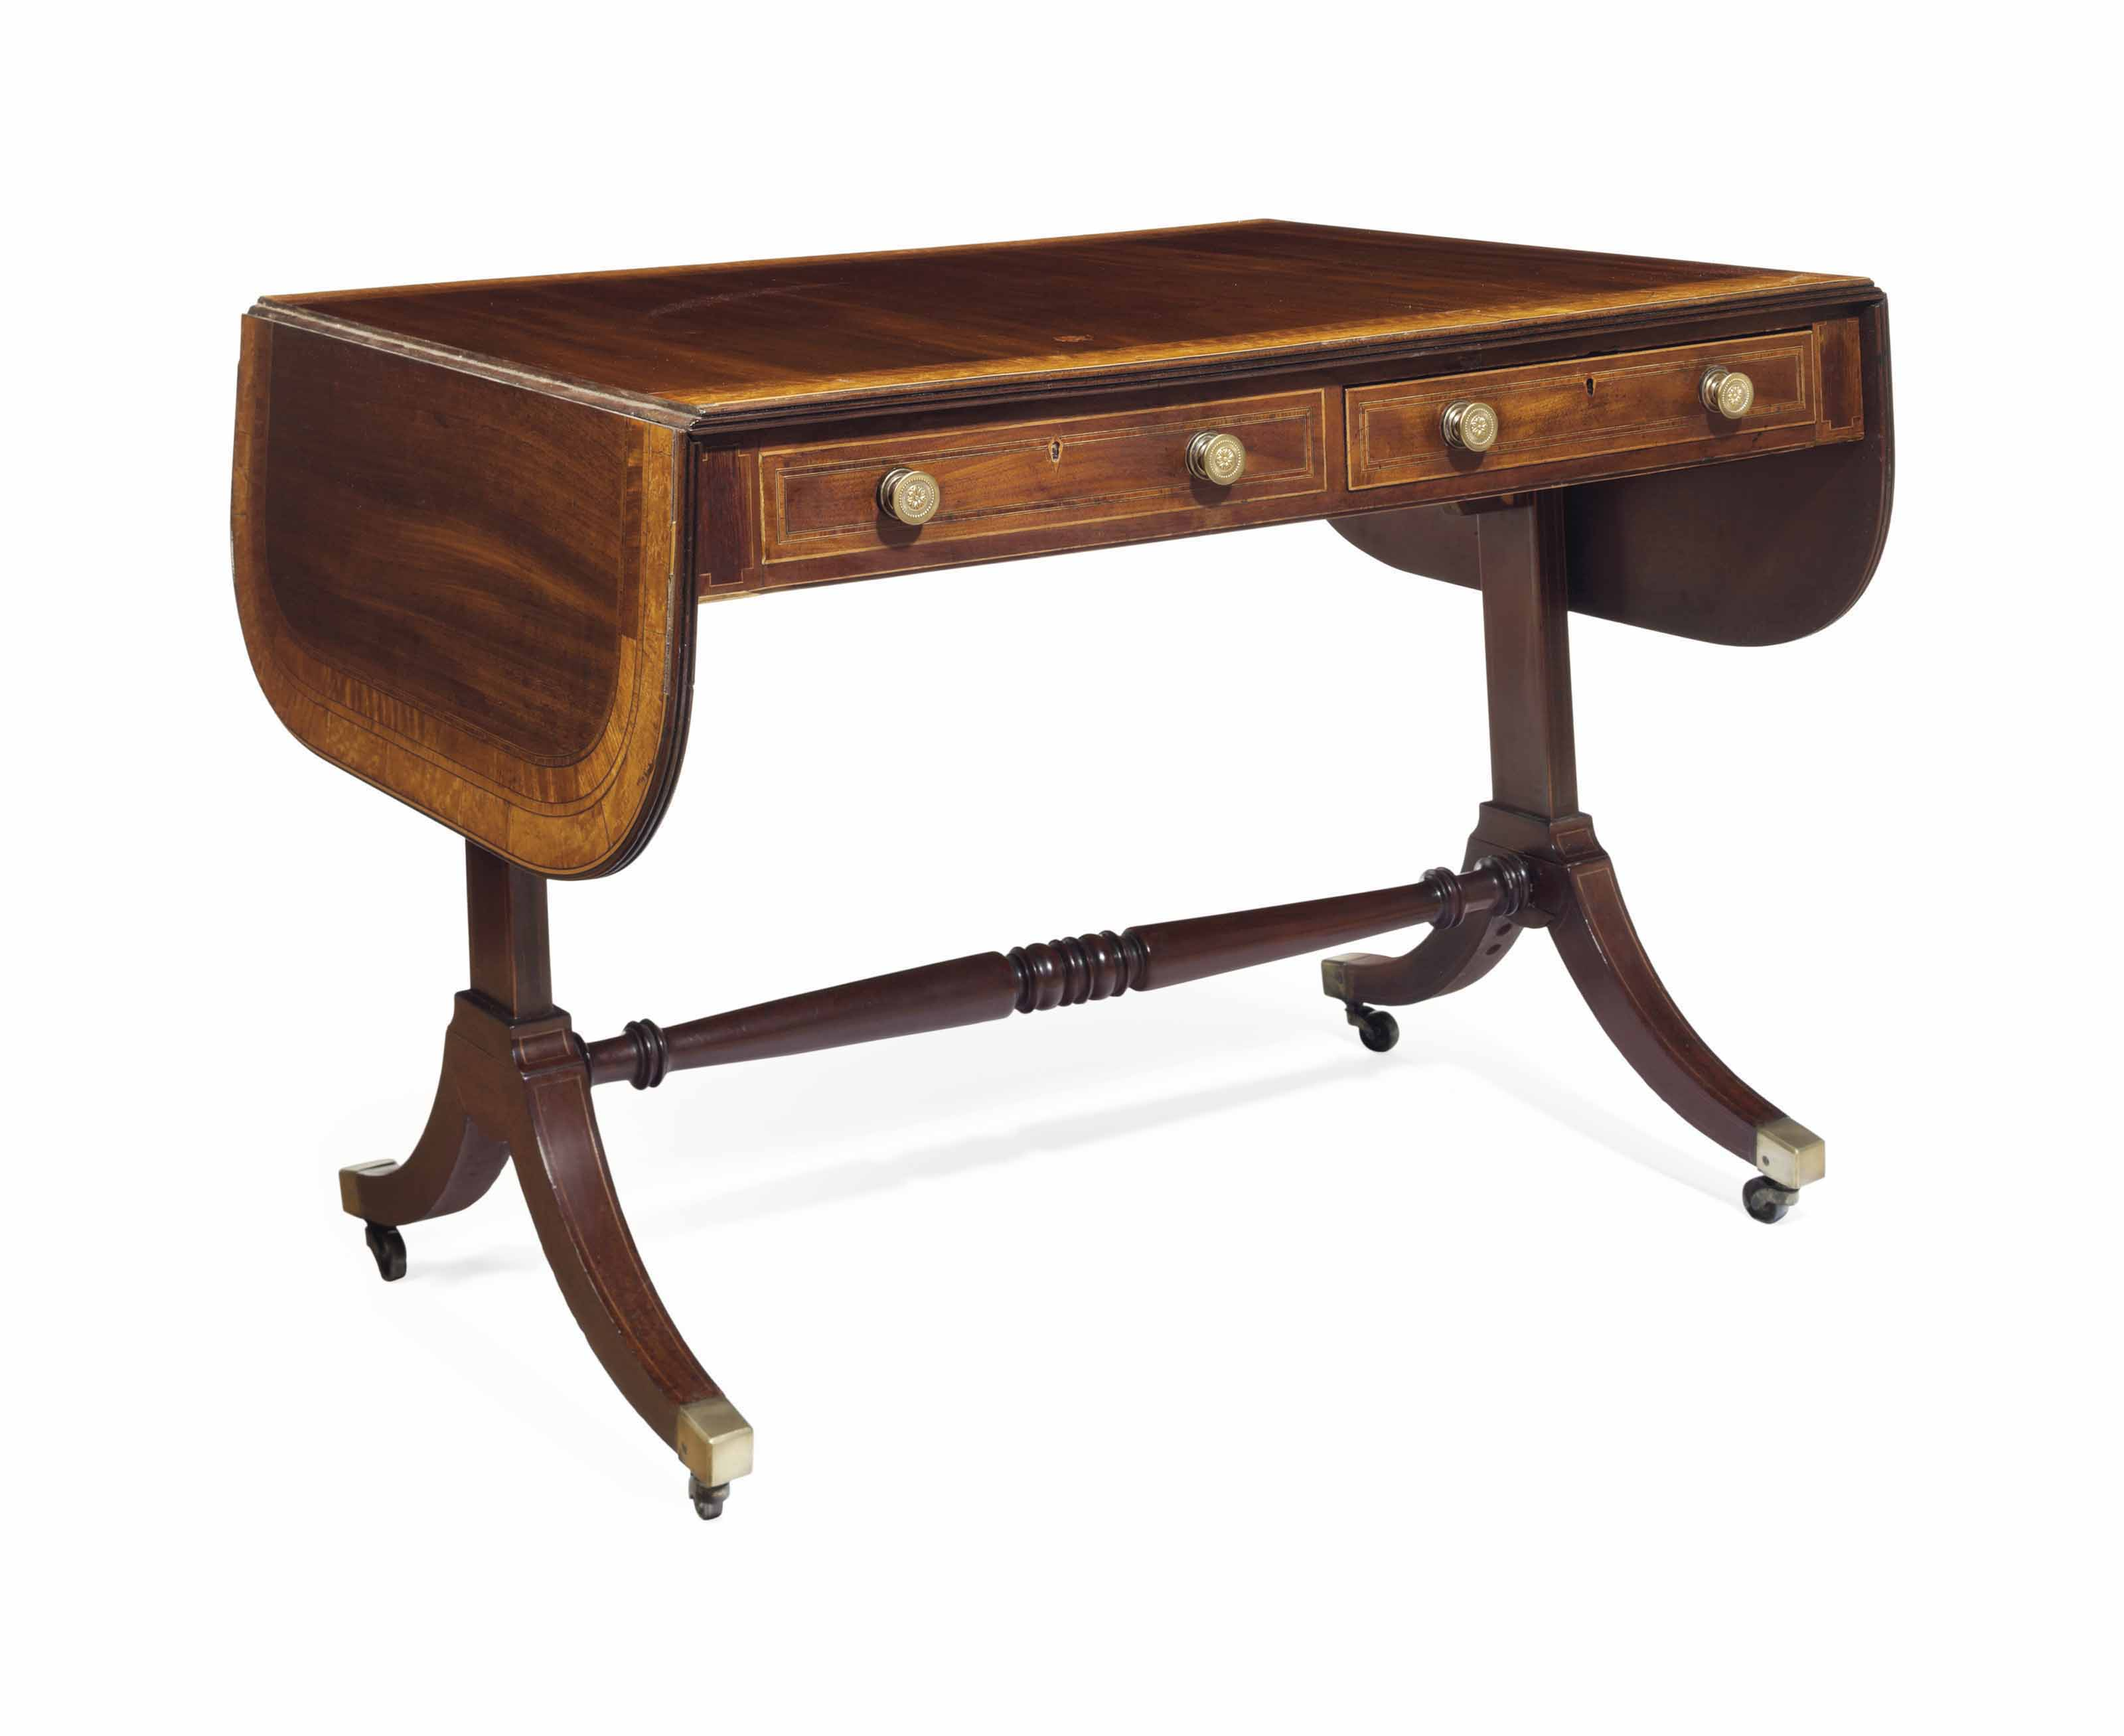 A LATE REGENCY MAHOGANY, BIRD'S-EYE MAPLE AND INDIAN ROSEWOOD SOFA TABLE